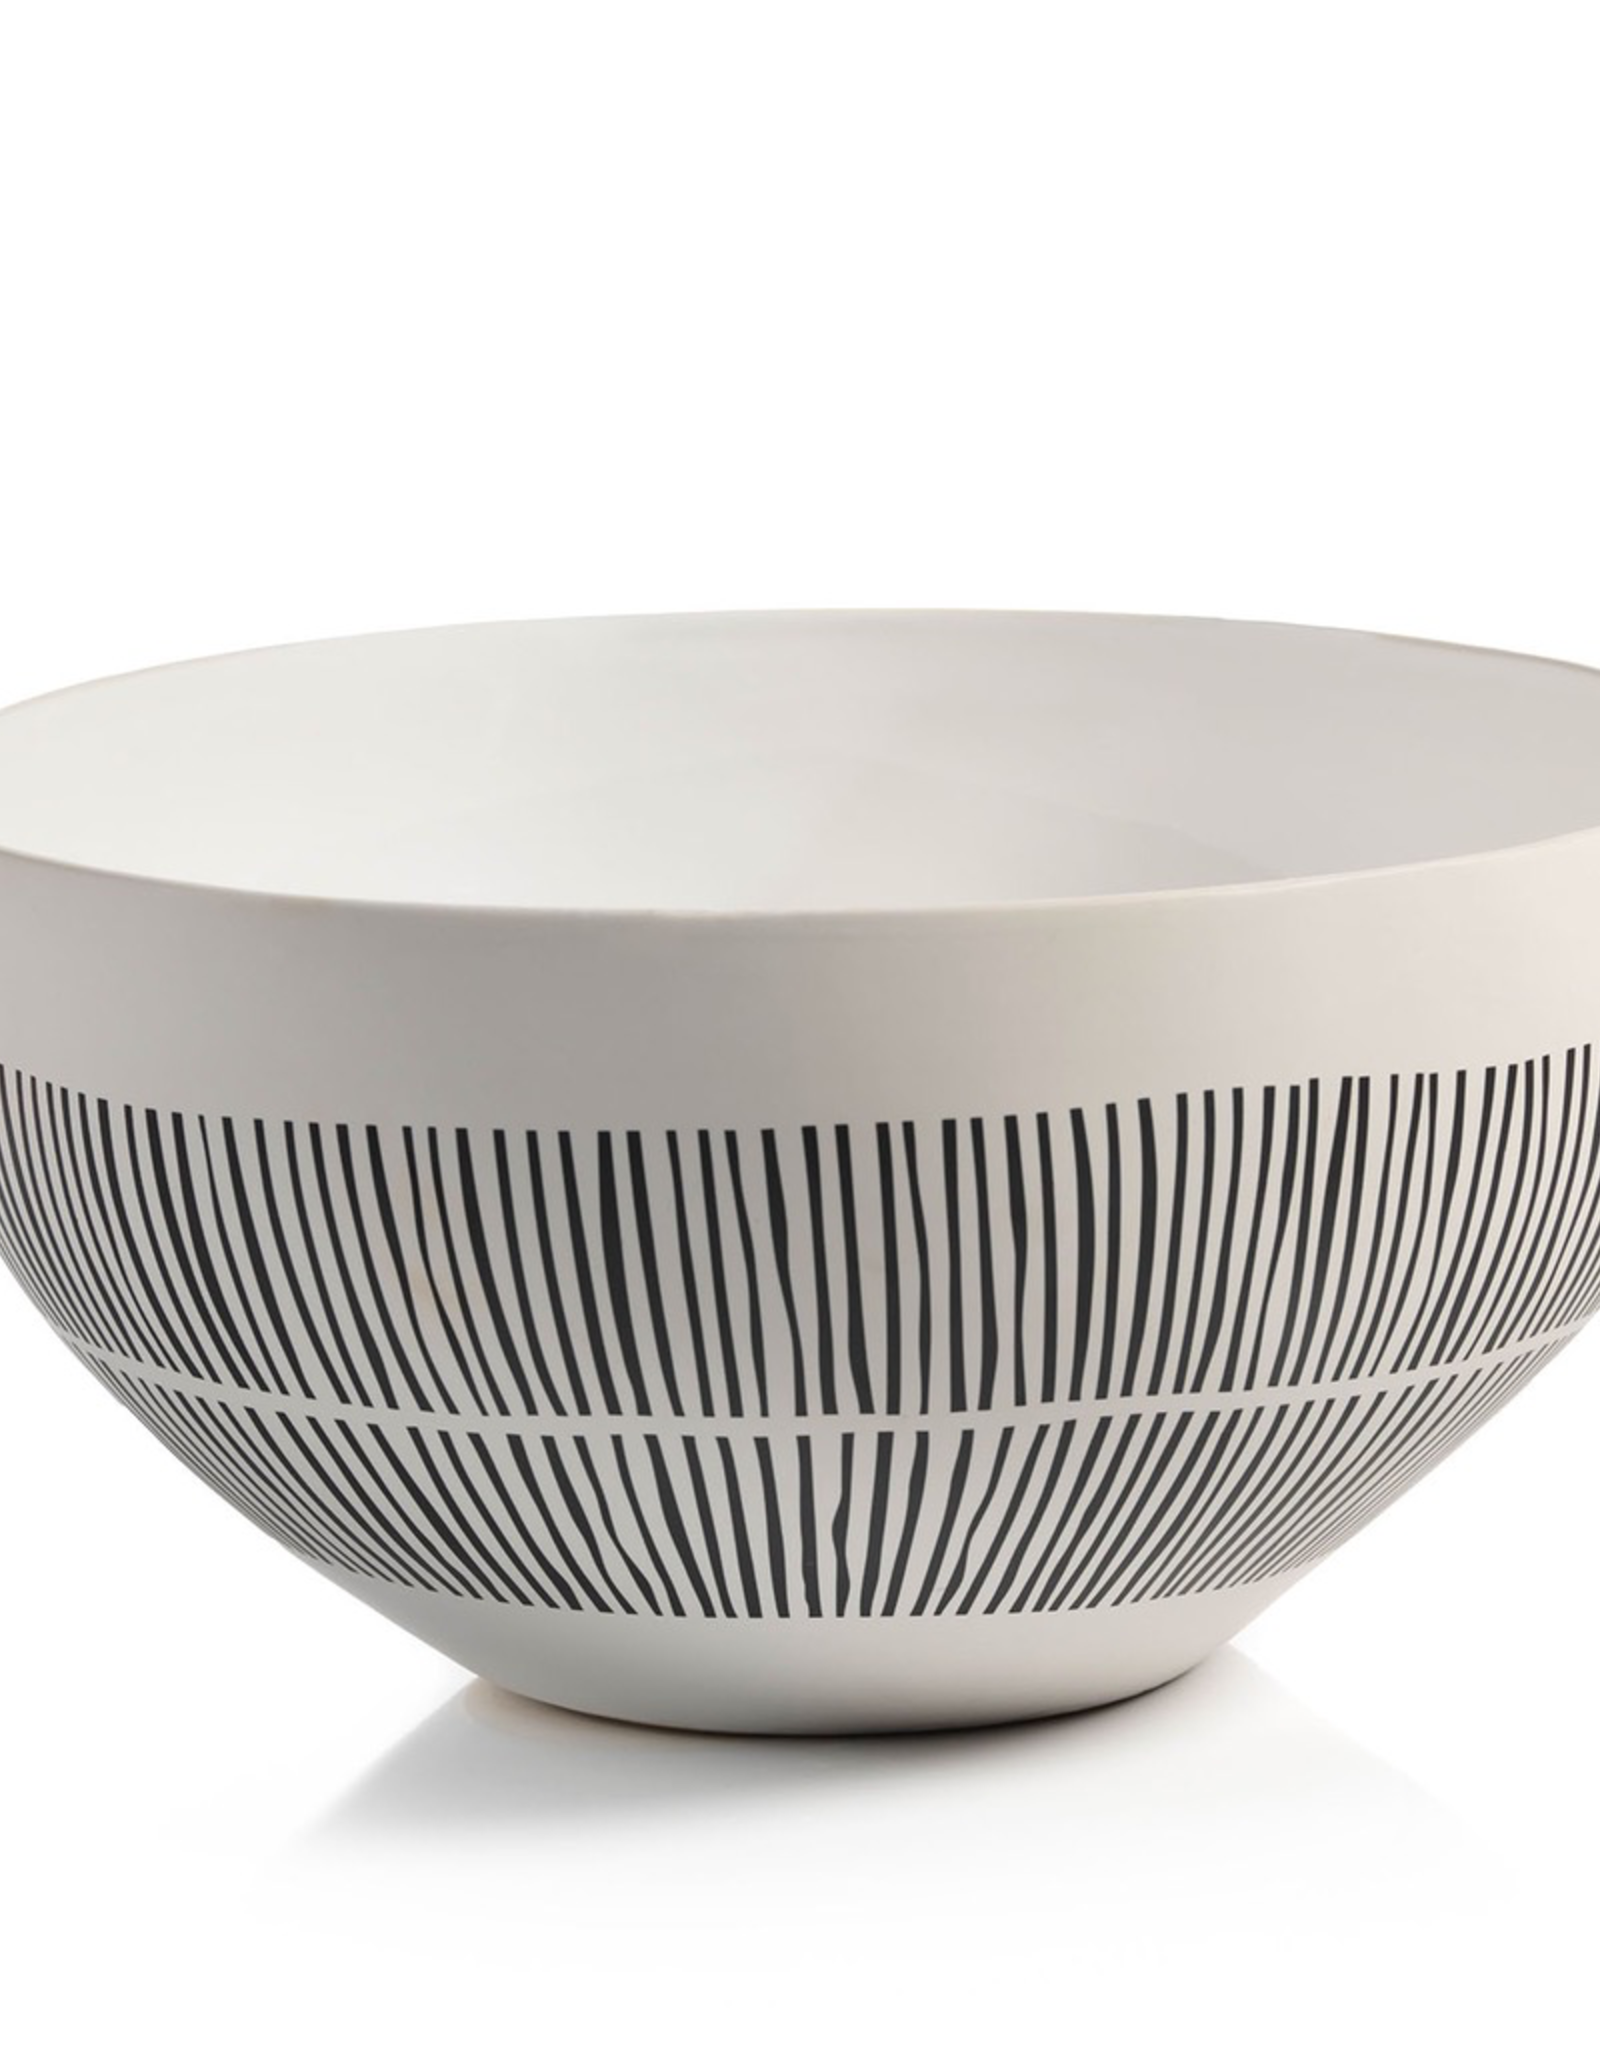 Bowl, Portofino Ceramic, D 14""